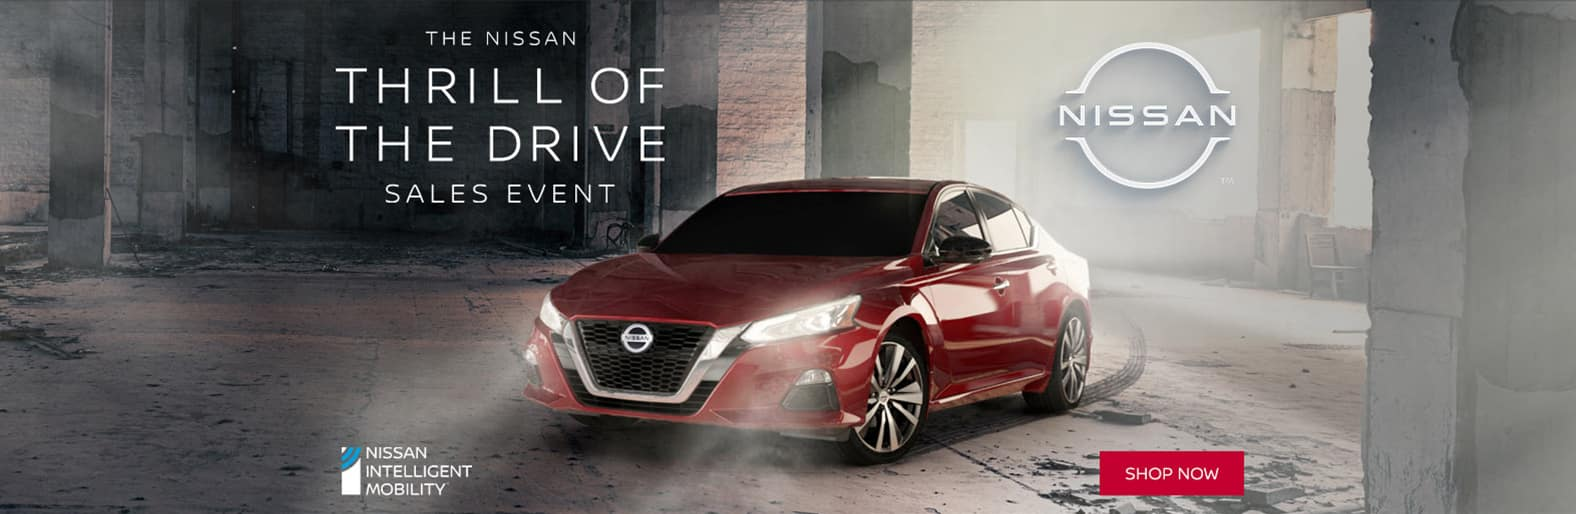 The Nissan Thrill of the Drive Sales Event. Shop now.